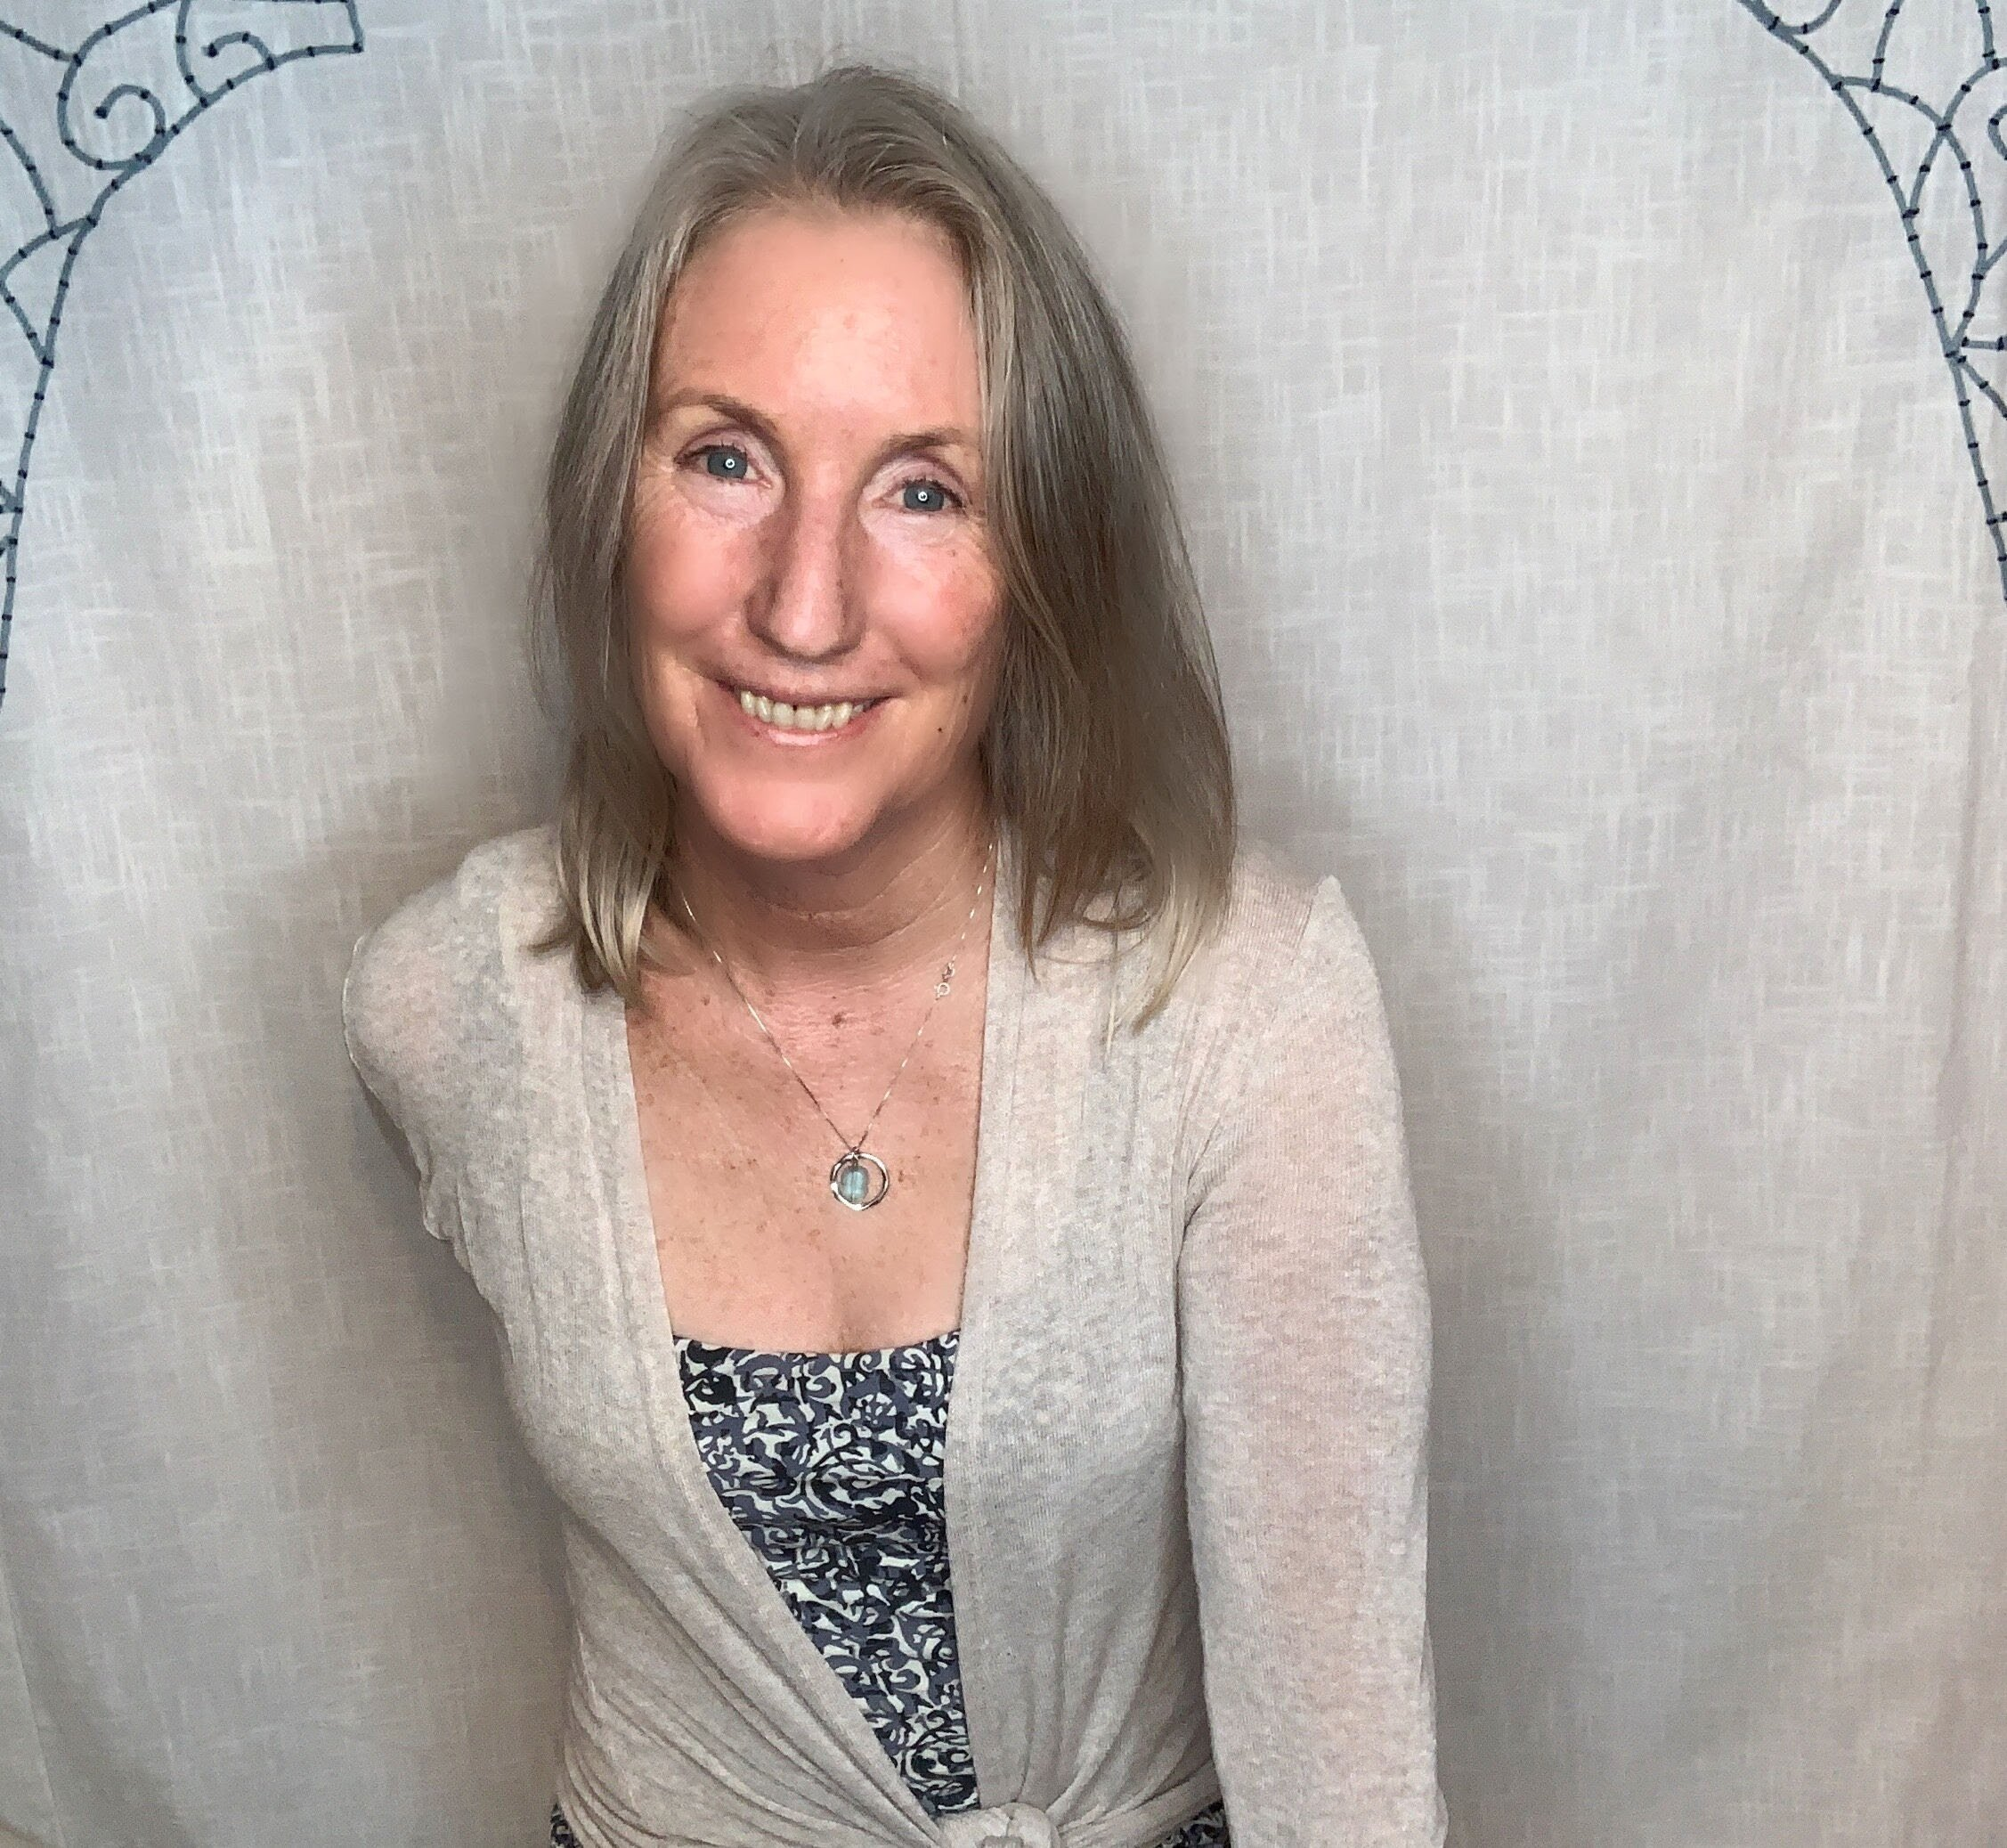 Hi there! - I'm Dianne Shepherd. Certified Holistic Sex Coach, astrologer, yoga teacher and wing woman for your inner Venus.Learn all about me and this work here: